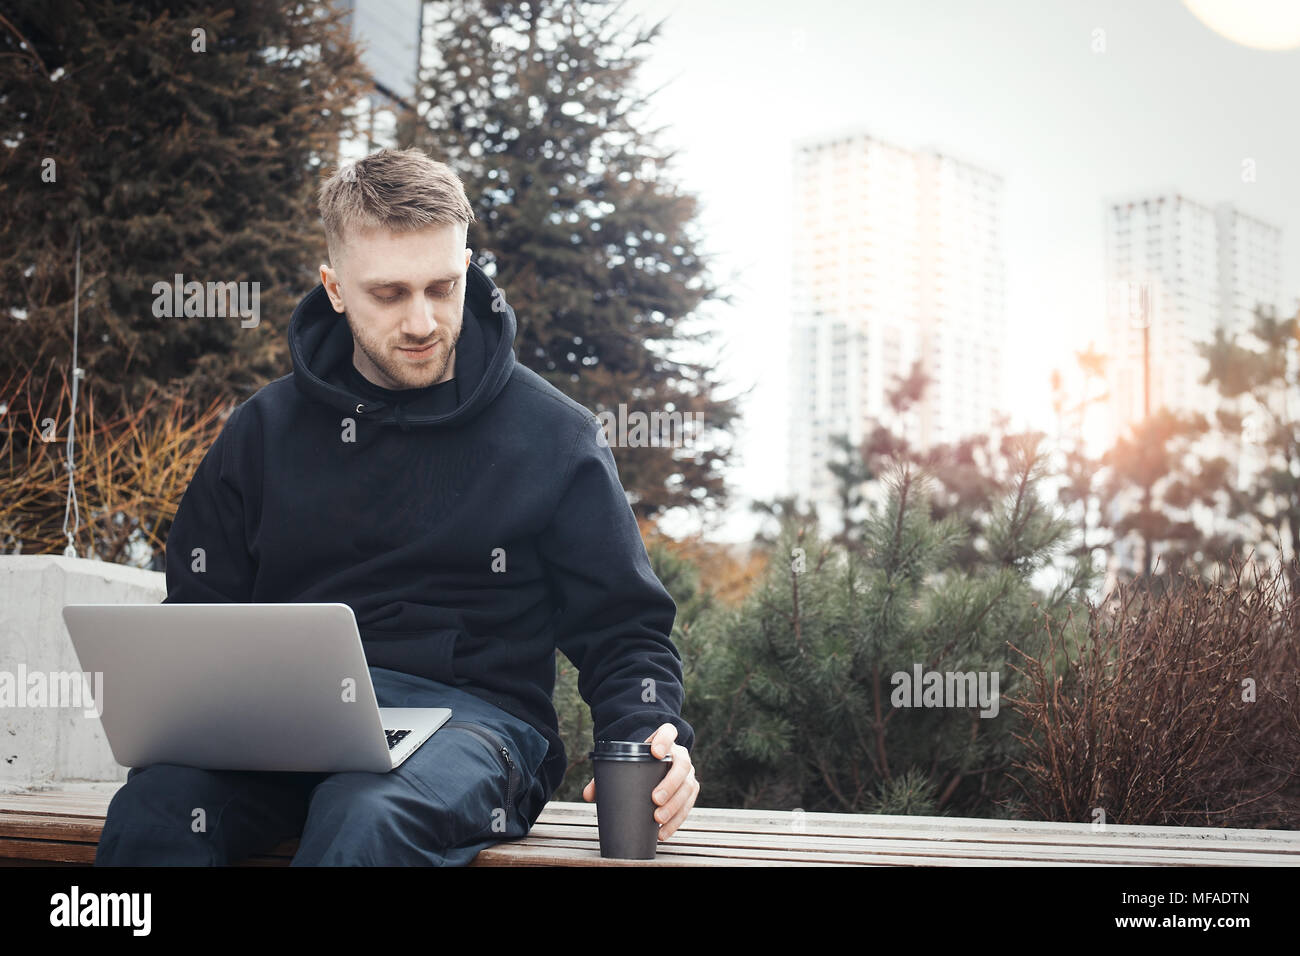 Young man holding laptop on knees. Black coffee cup is next to him. - Stock Image